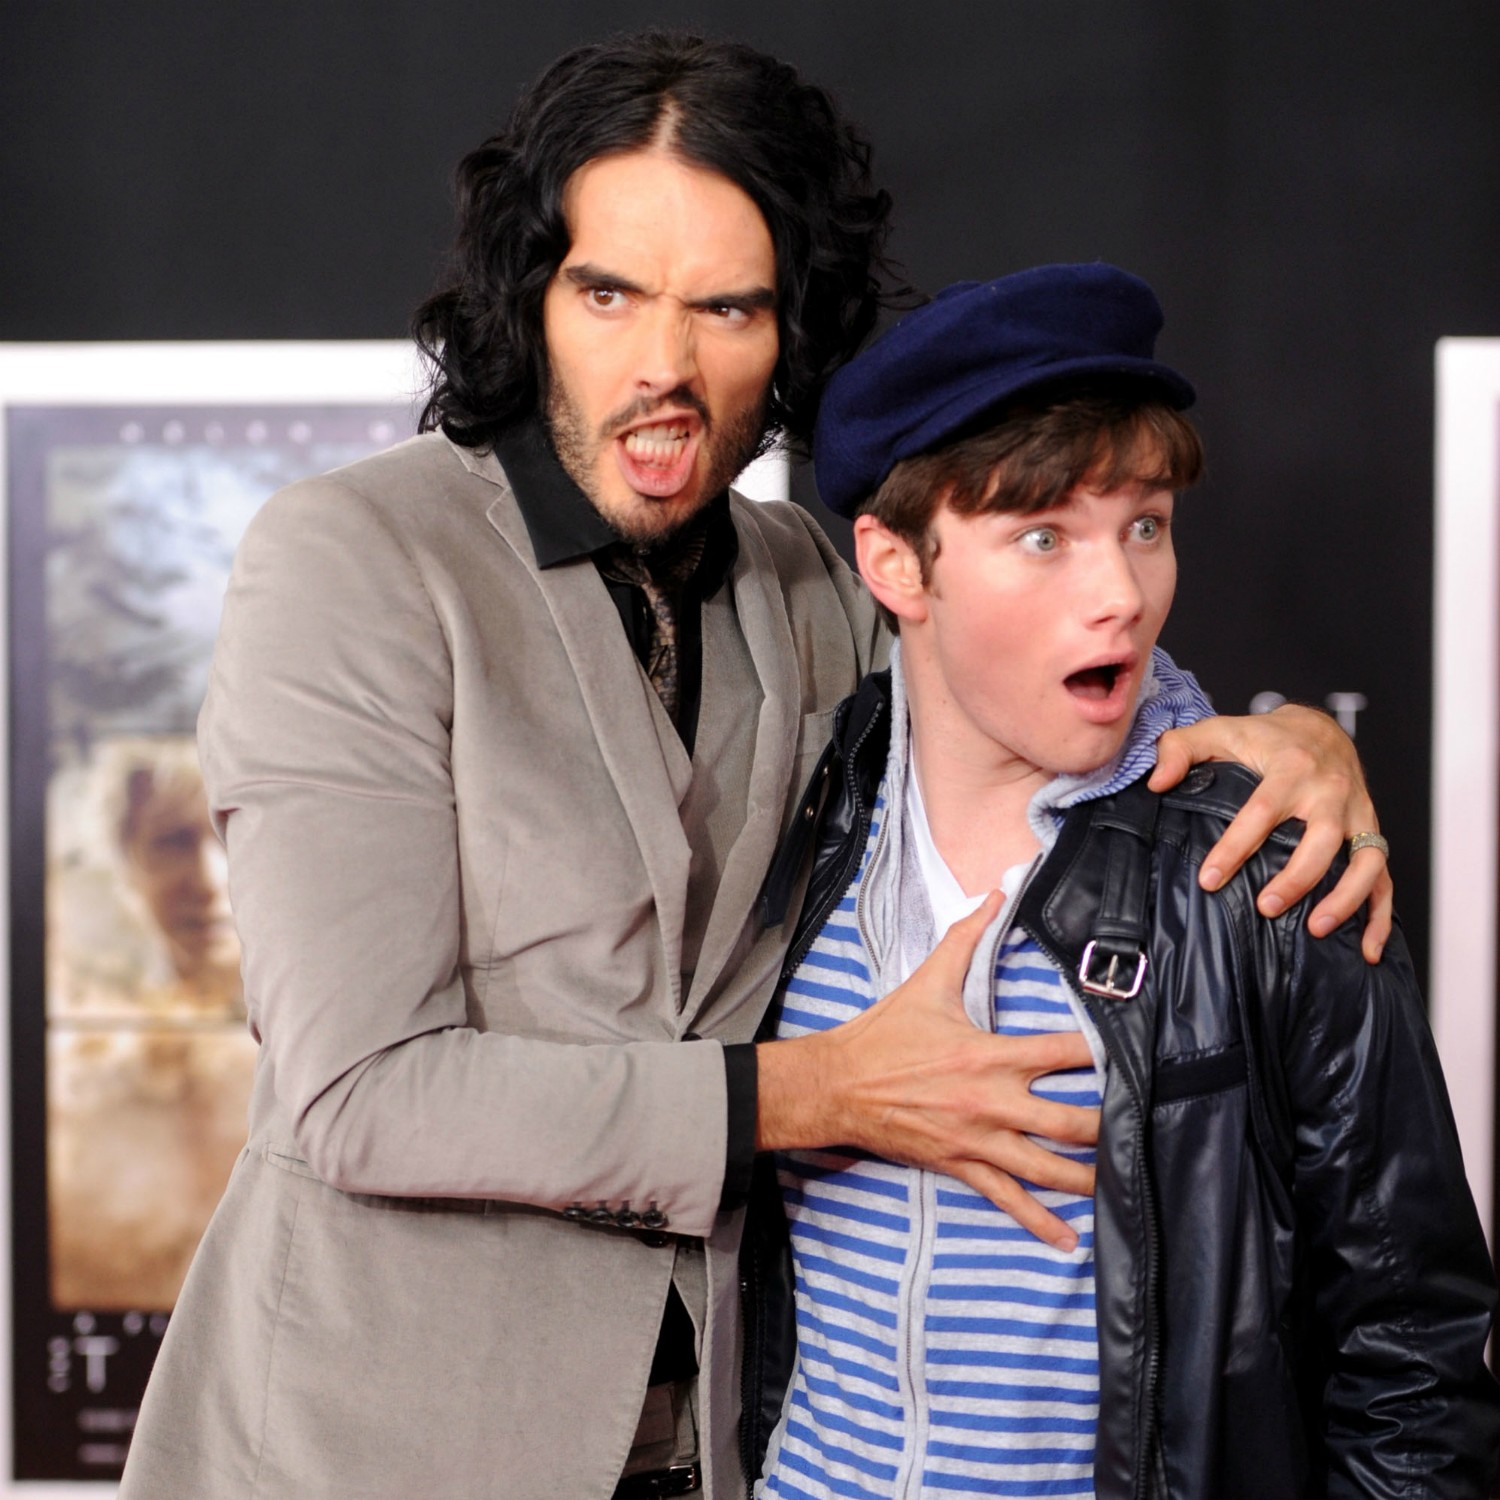 O comediante Russell Brand (à esq.) e o ator de 'Glee' Chris Colfer no lançamento do filme 'A Tempestade' (2010) em Los Angeles. (Foto: Getty Images)